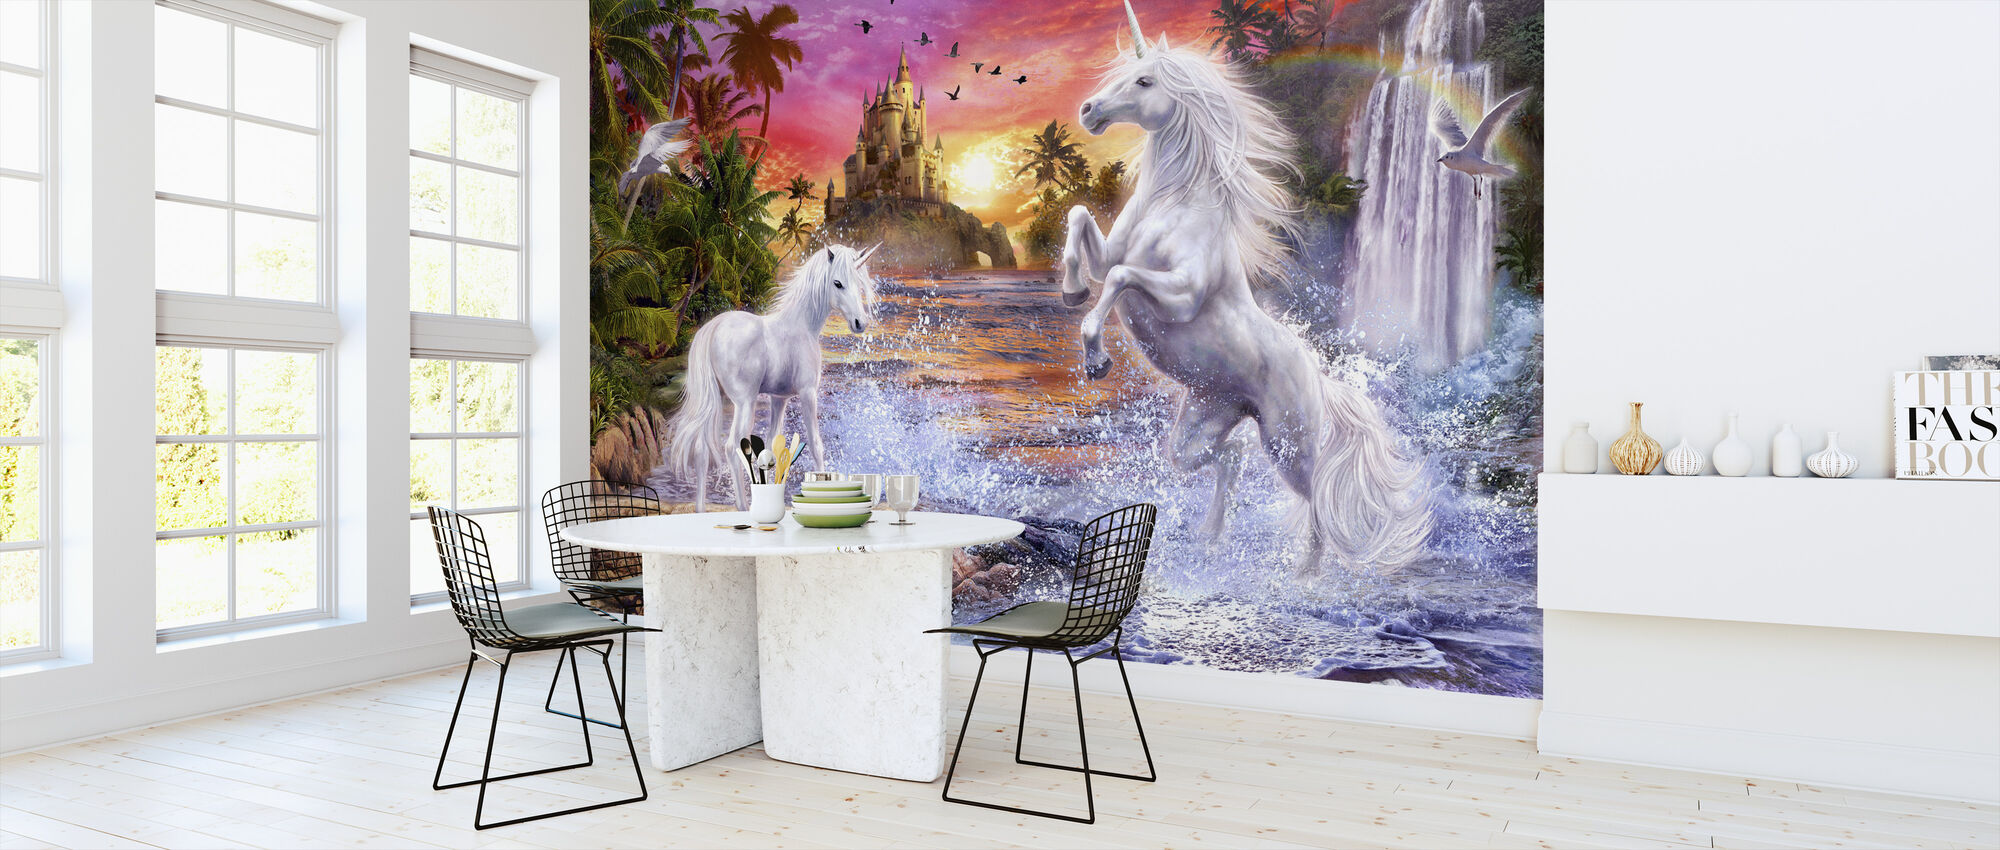 Unicorn Waterfall Sunset - Wallpaper - Kitchen